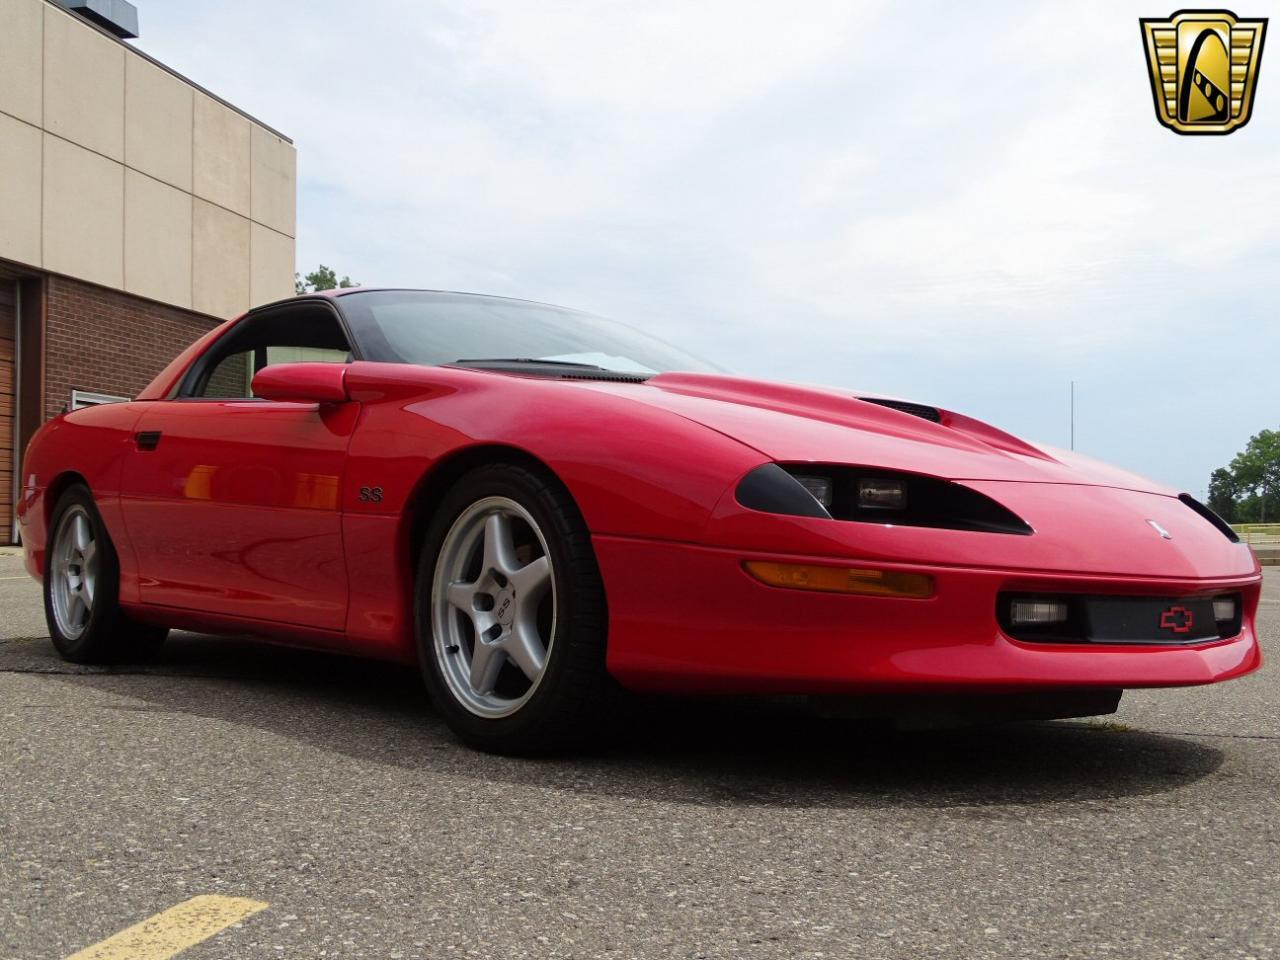 Large Picture of 1996 Chevrolet Camaro located in Dearborn Michigan Offered by Gateway Classic Cars - Detroit - LDUP